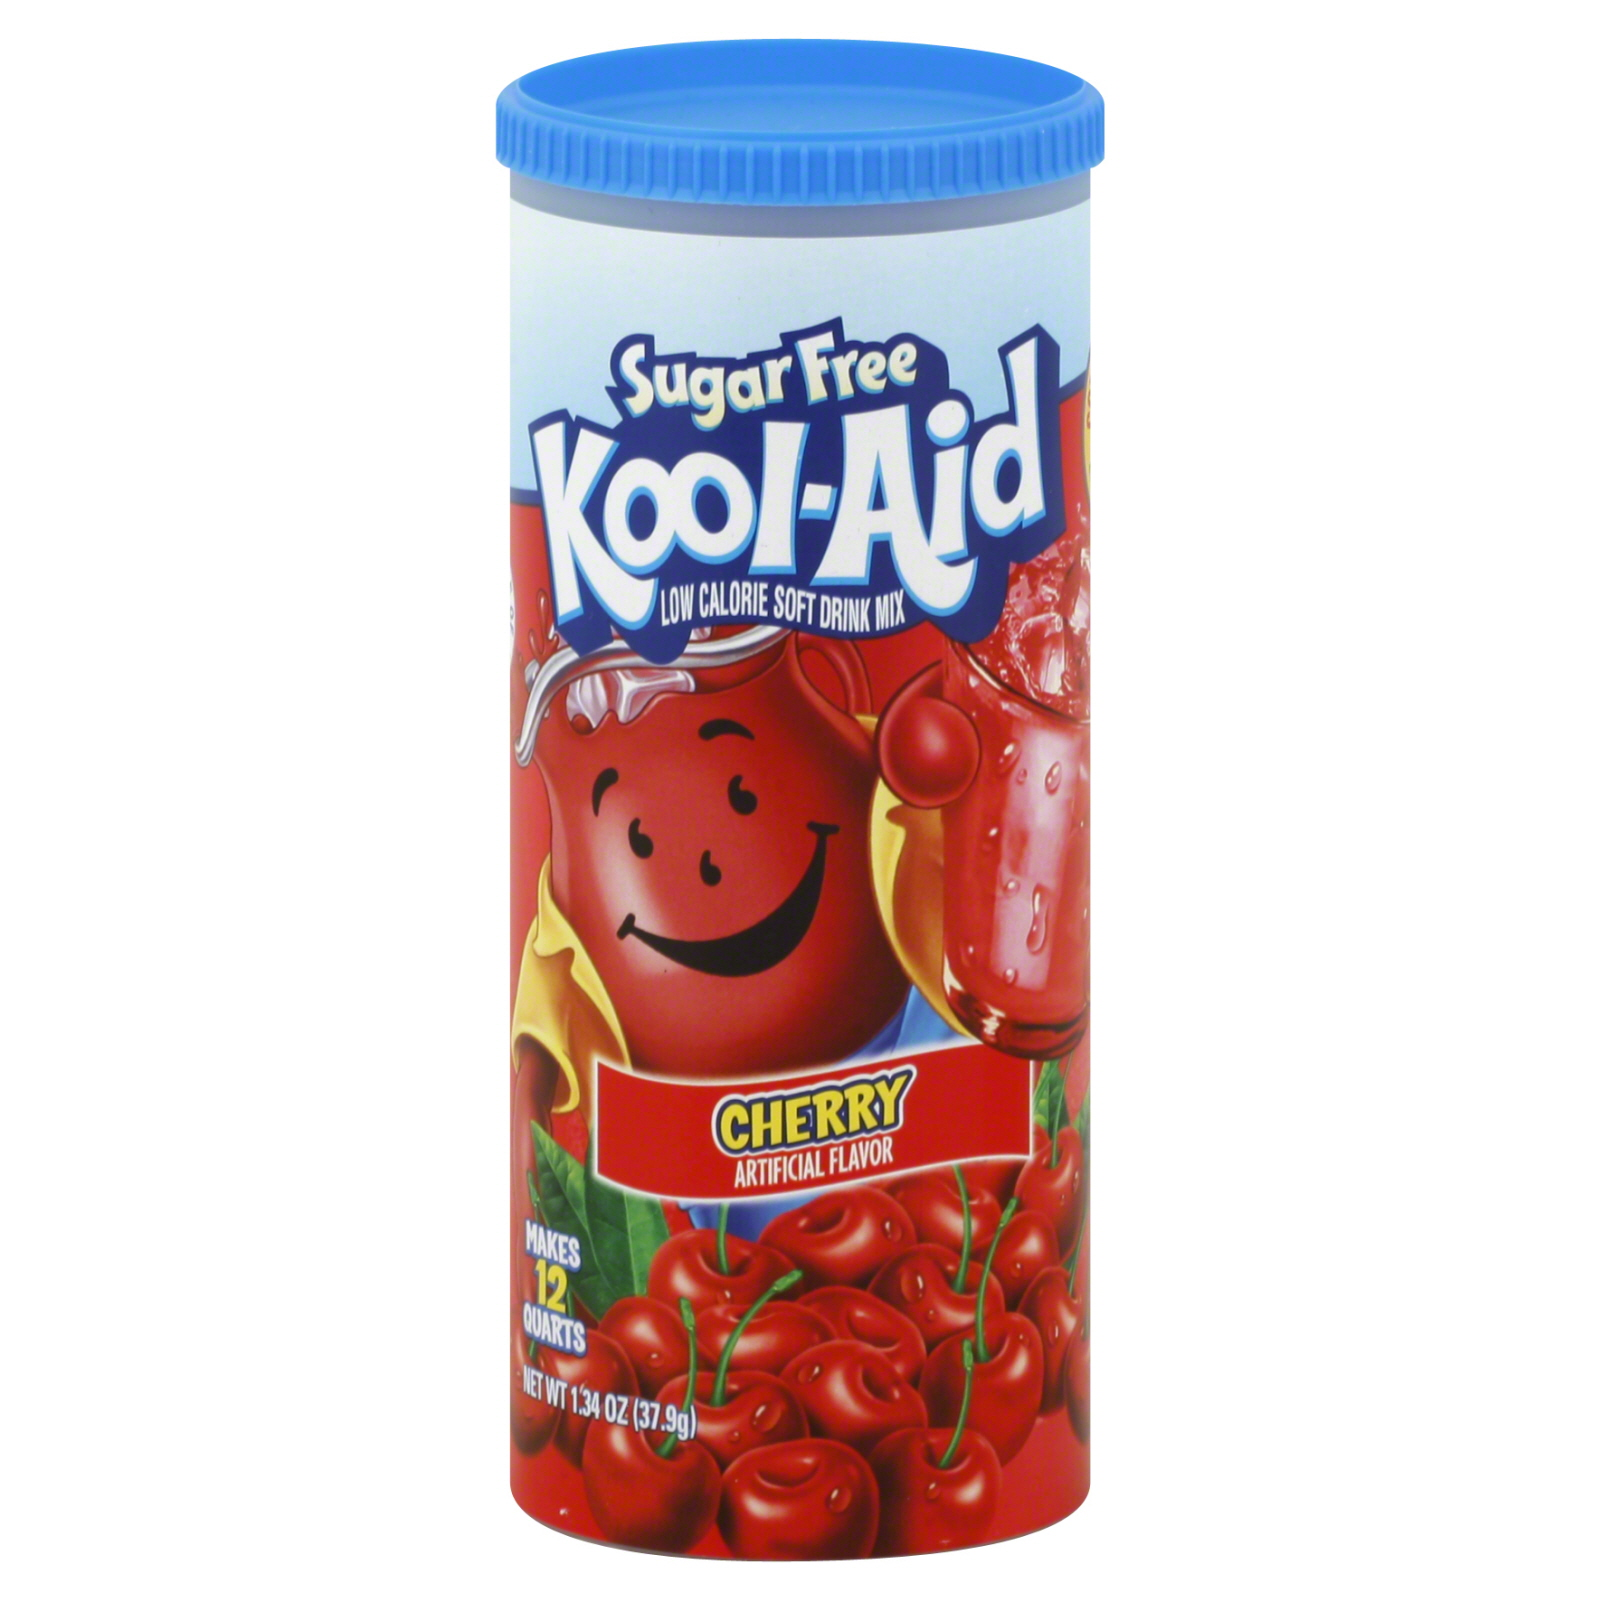 Soft Drink Mix, Sugar Free, Cherry, 6 sticks [1.34 oz (37.9 g)]                                                                  at mygofer.com